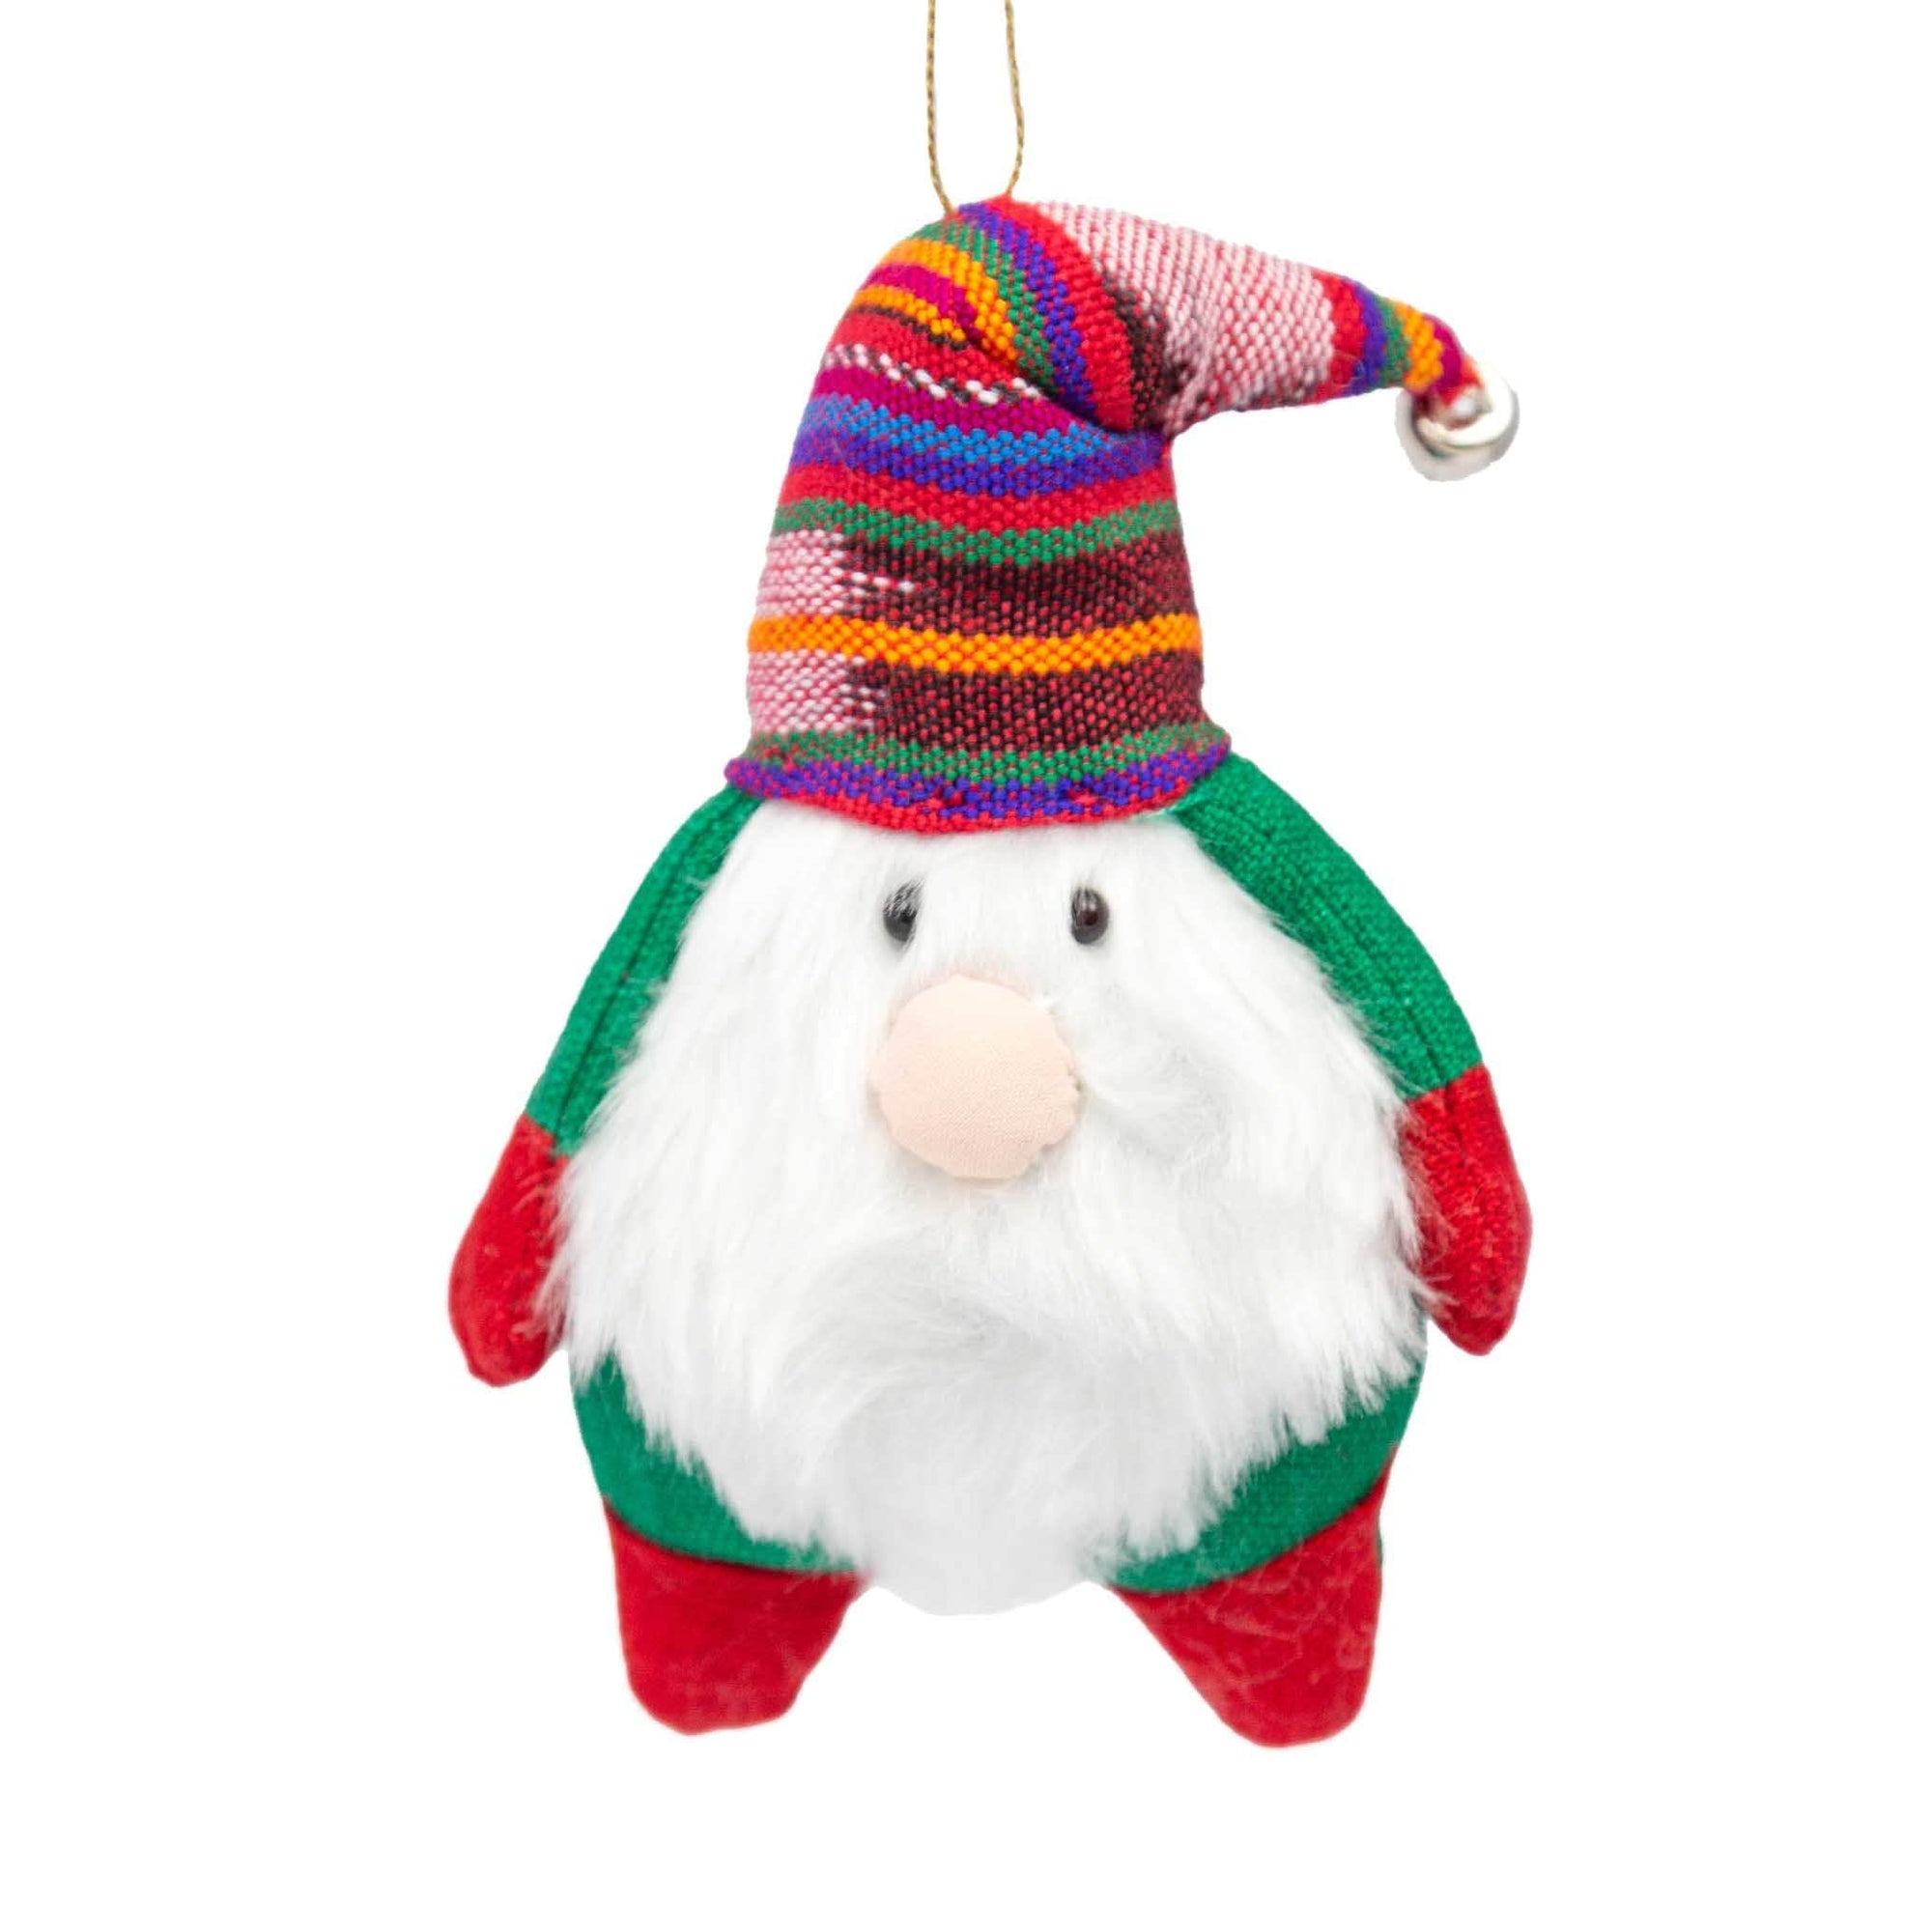 Festive Gnome Ornament